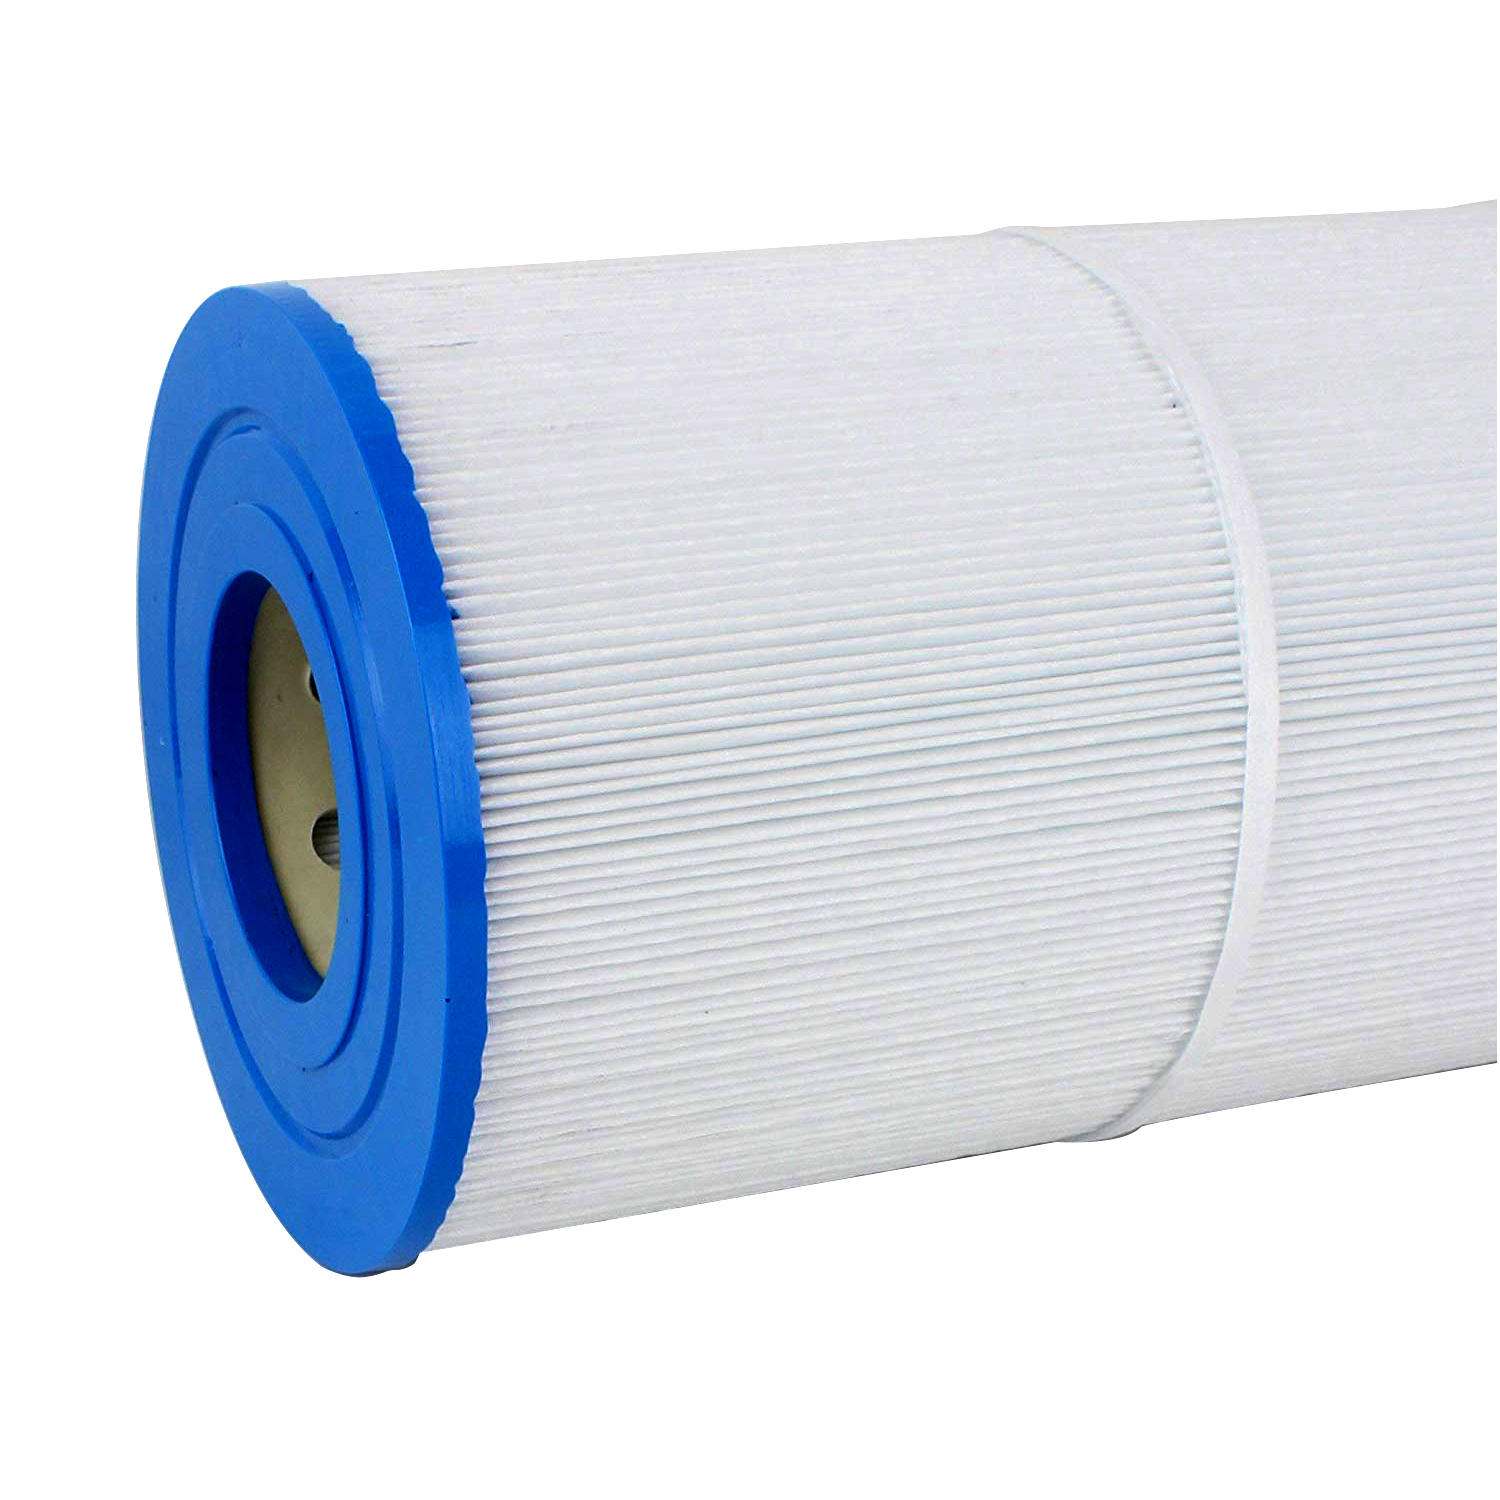 Manufacturing Companies for High Flow Rate -